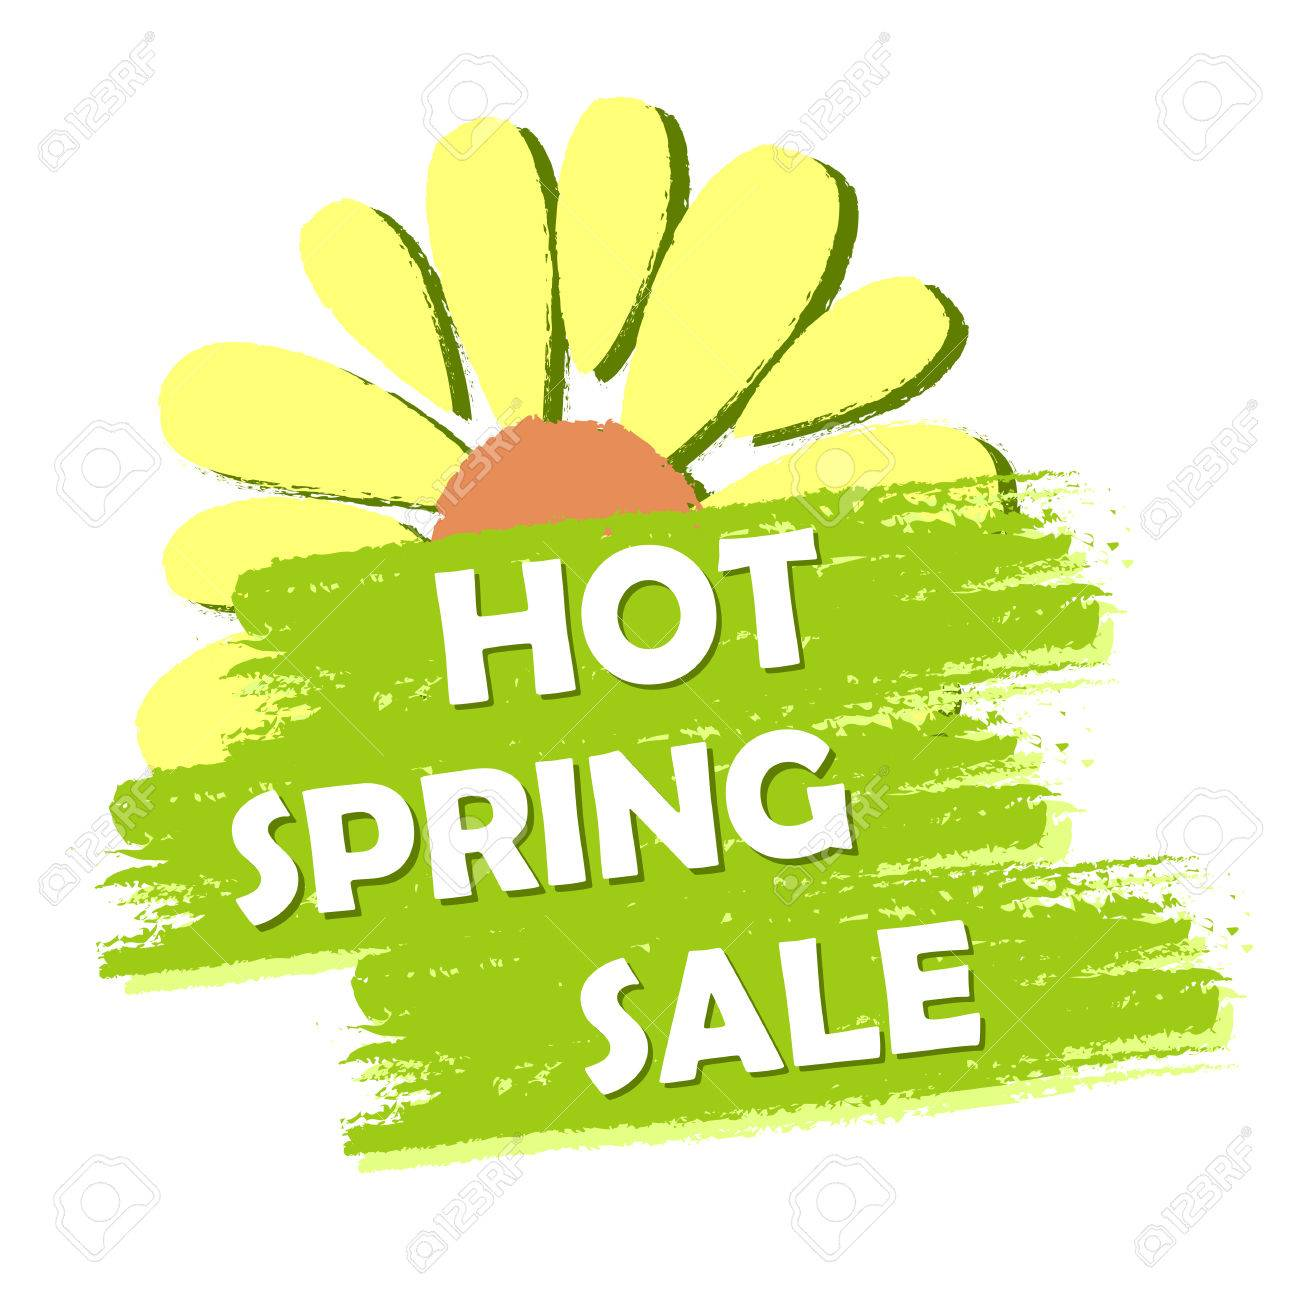 Hot Spring Sale Banner Text And Flower Symbol In Green Drawn